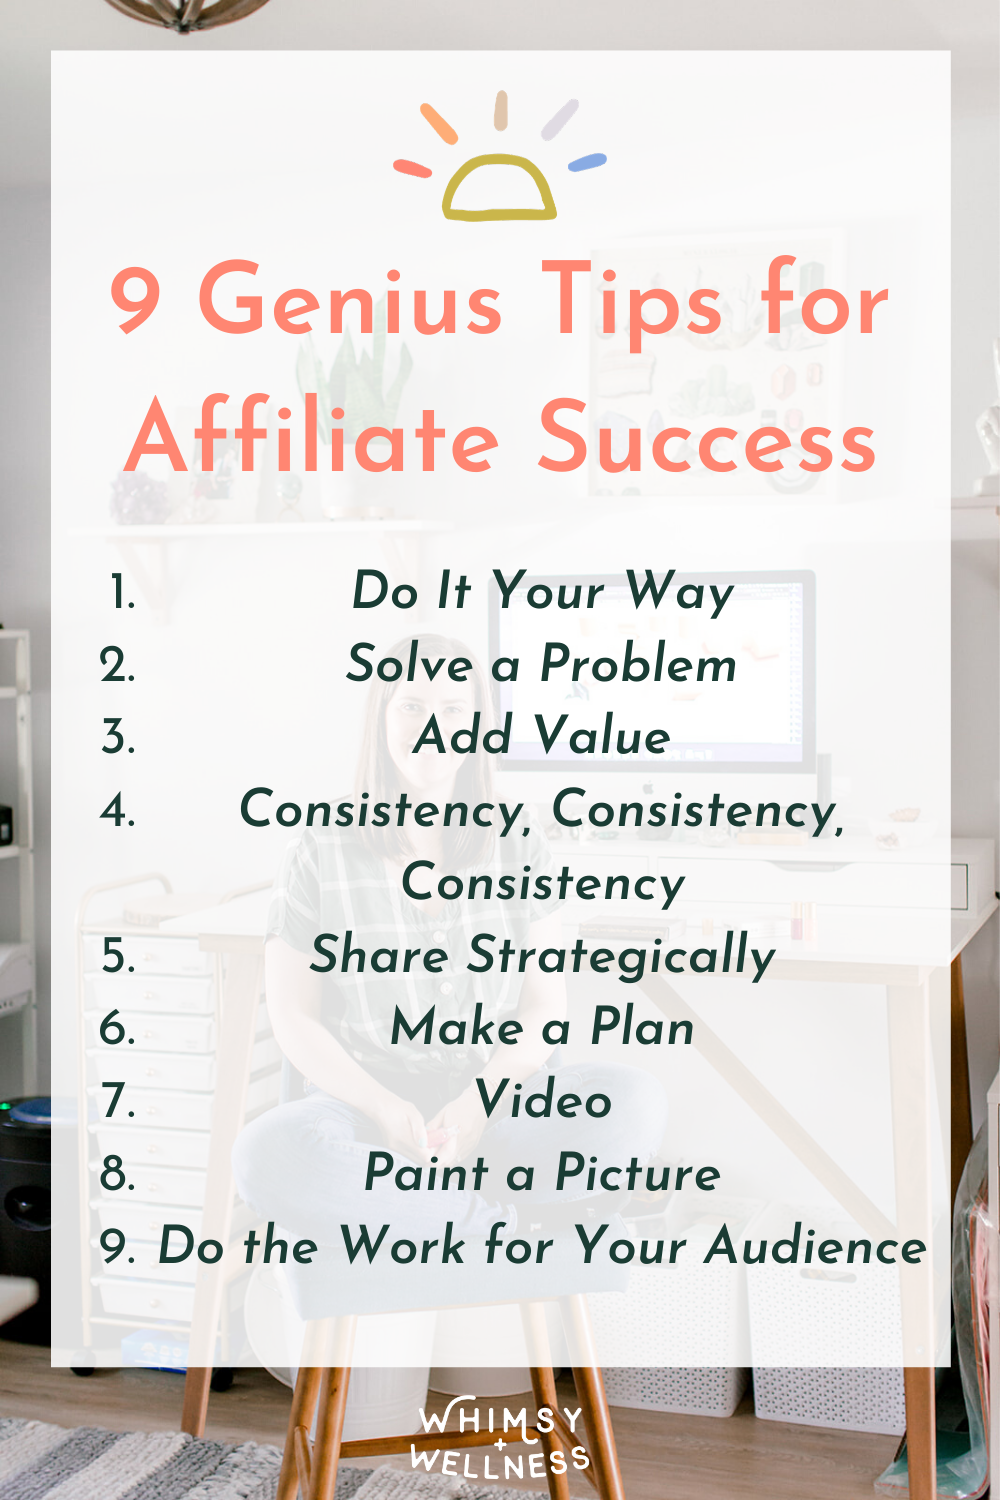 9 Genius Tips for Affiliate Success